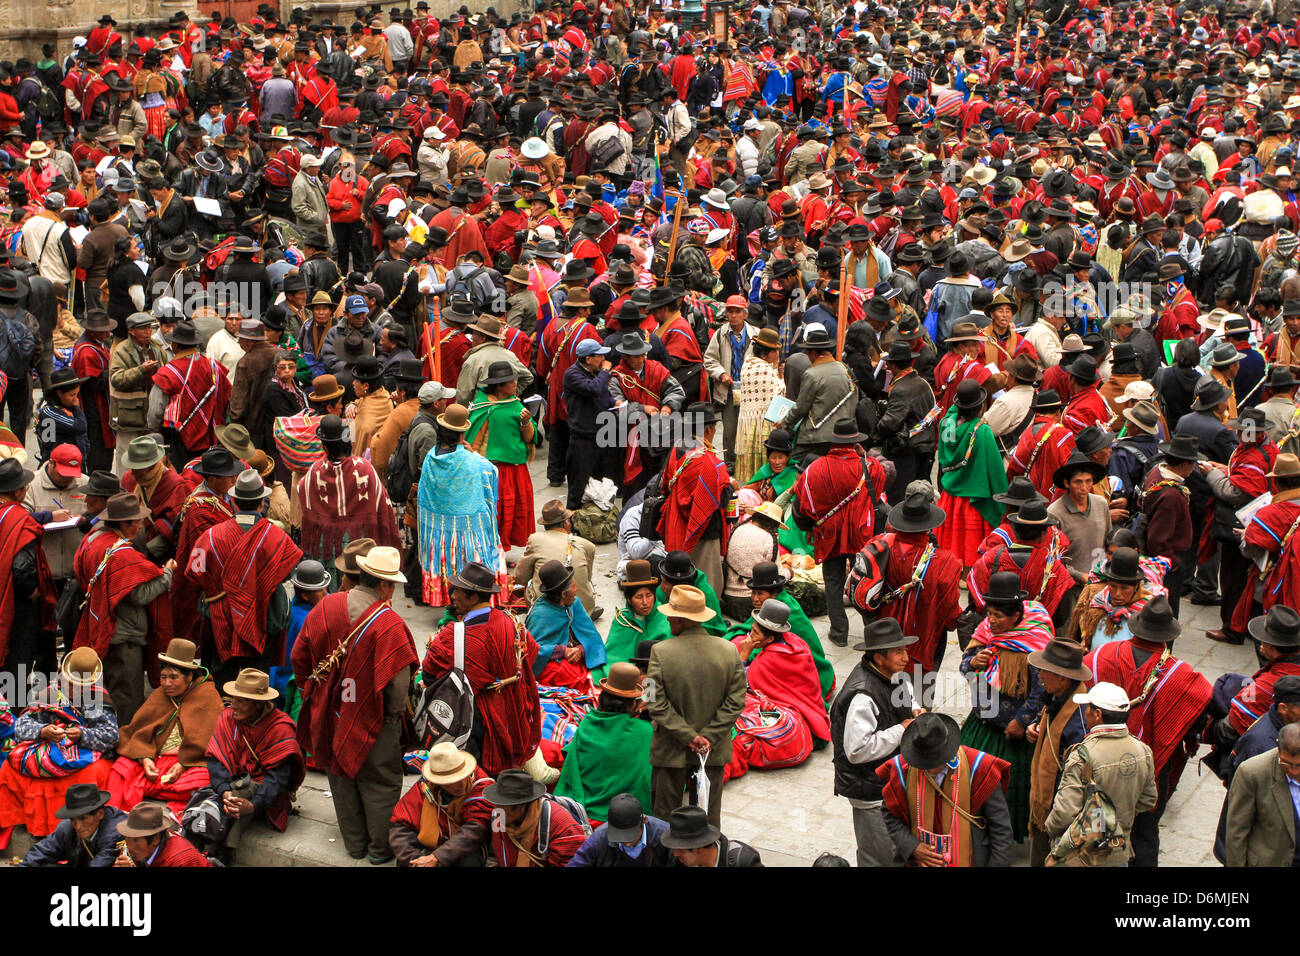 Indigenous peoples gathering to protest - Stock Image